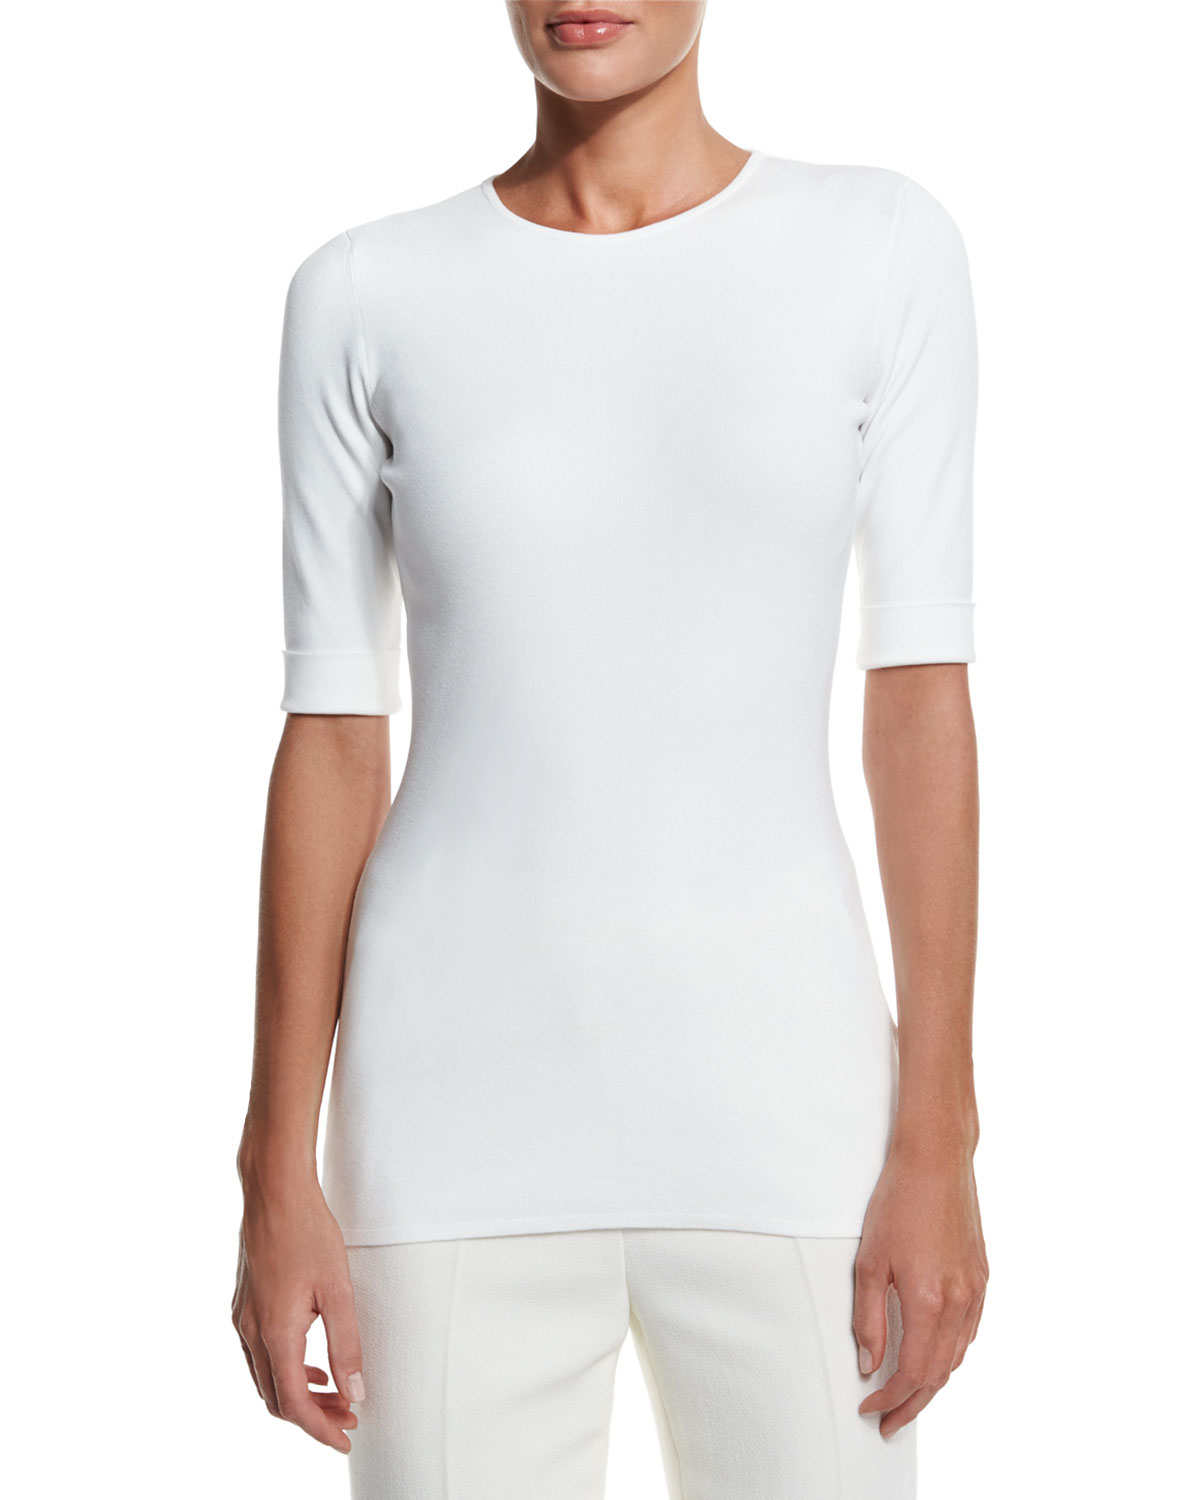 Half-Sleeve Jewel-Neck Tee, Off White, Size: L/10-12, OFF WHITE - Escada